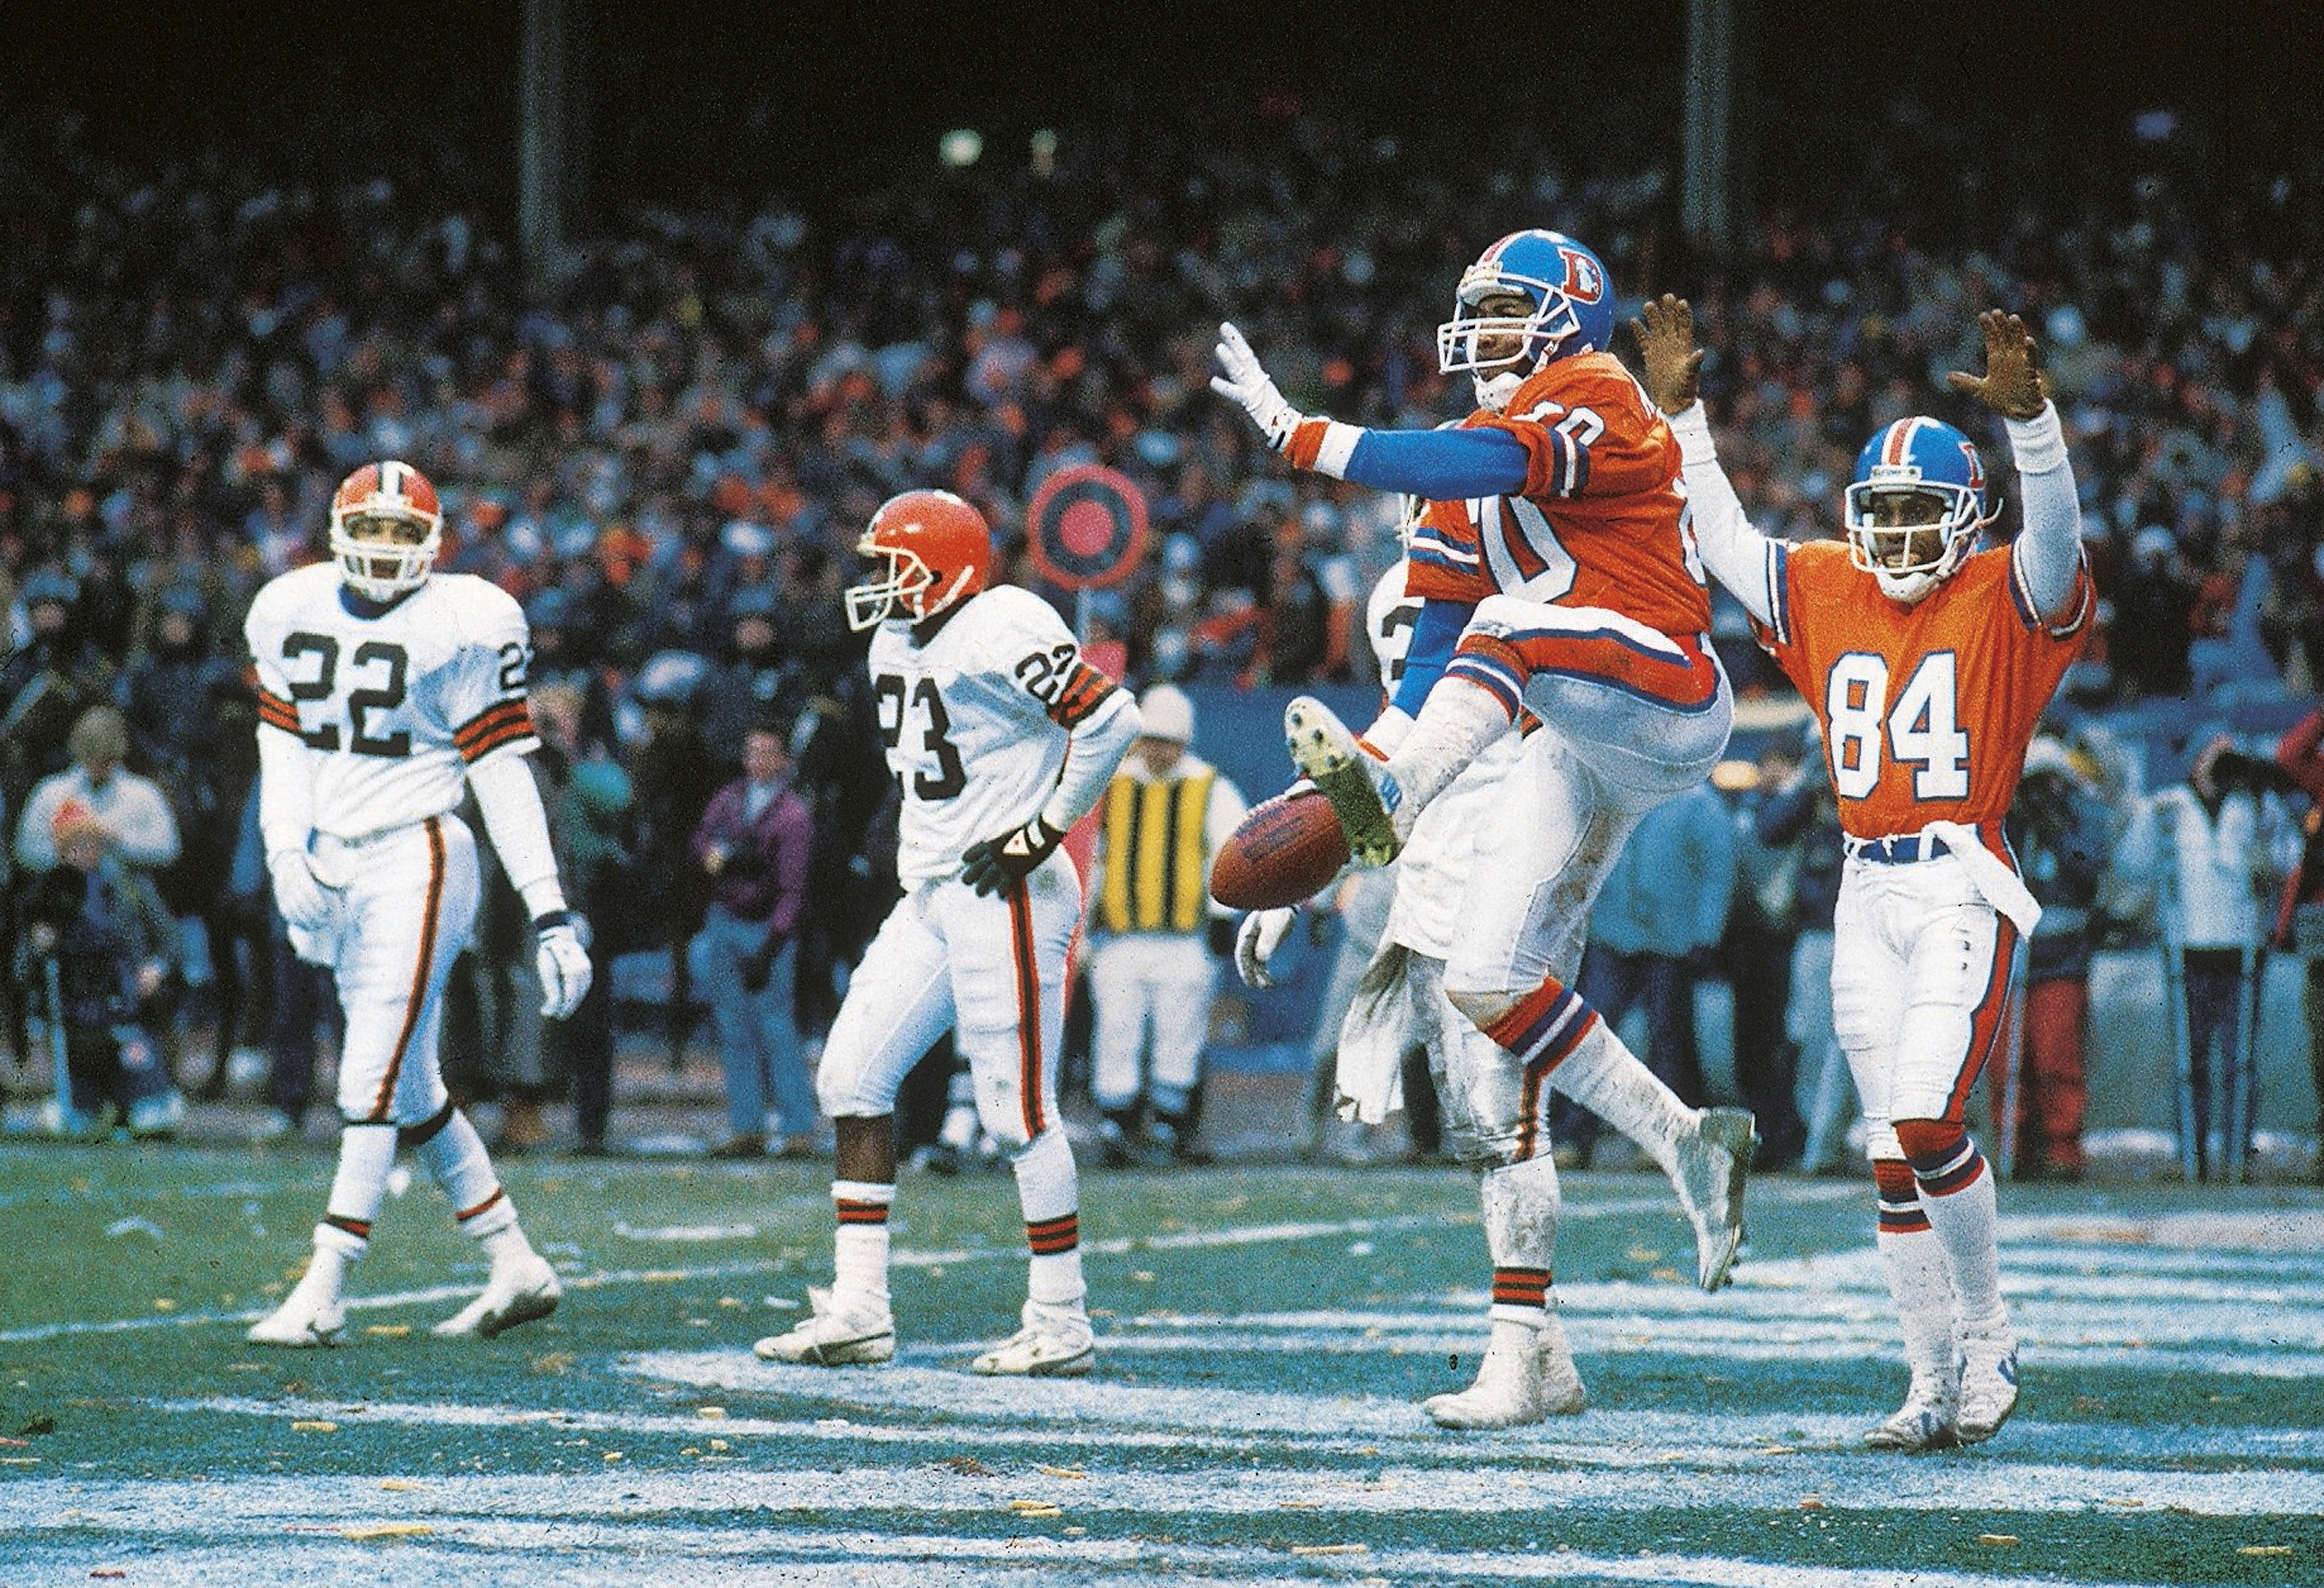 AFC Championship - Denver Broncos at Cleveland Browns - January 11th, 1987